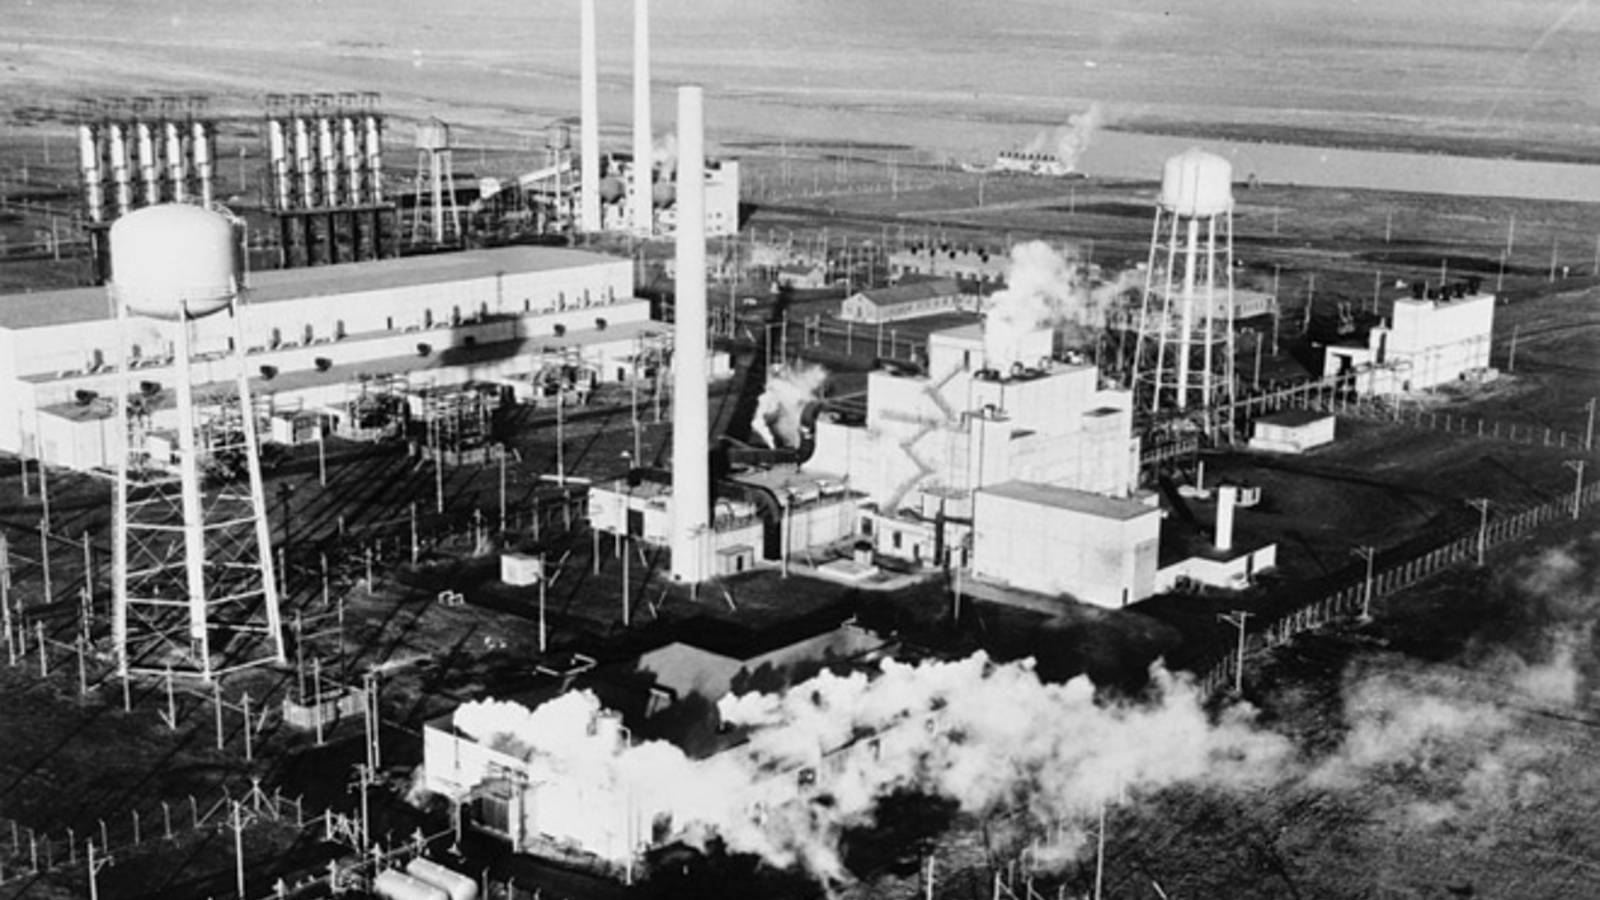 a history of the development of the manhattan project during world war ii The manhattan project was a very important event throughout the world war ii history it began the development of the atomic bomb and other nuclear weapons that were of good help during the war.